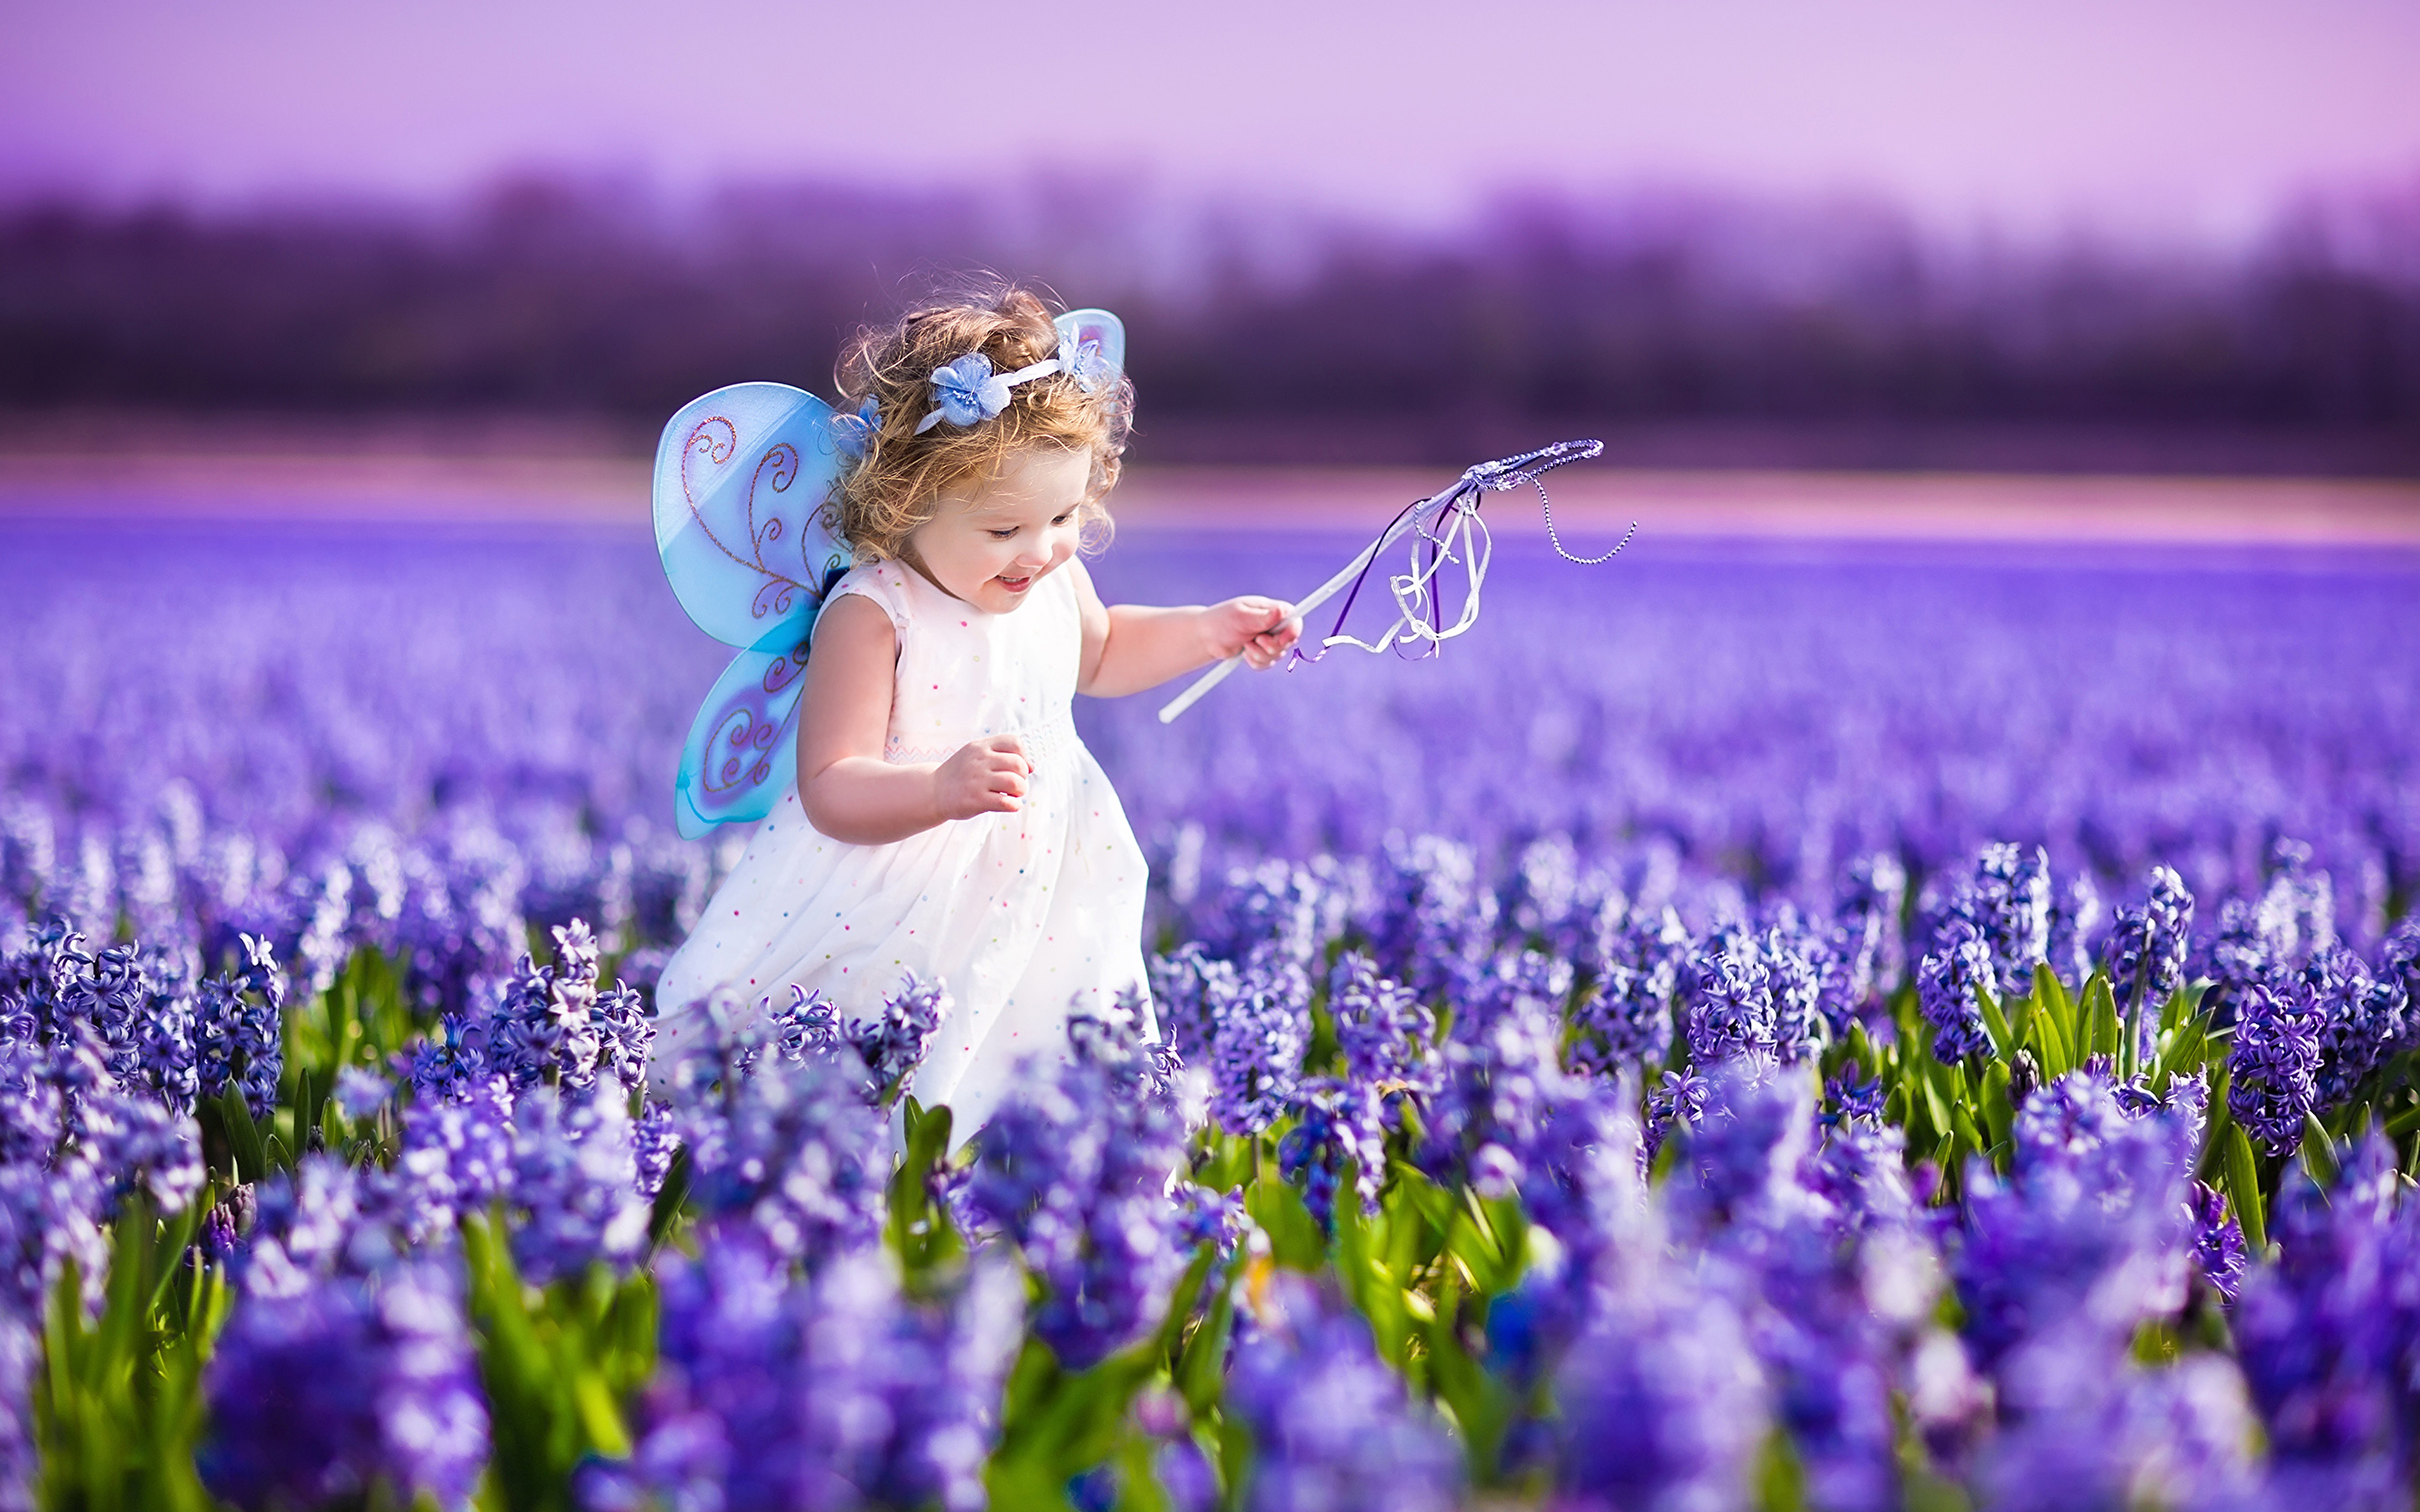 Spring Flowers And Butterflies Wallpaper Posted By Zoey Peltier